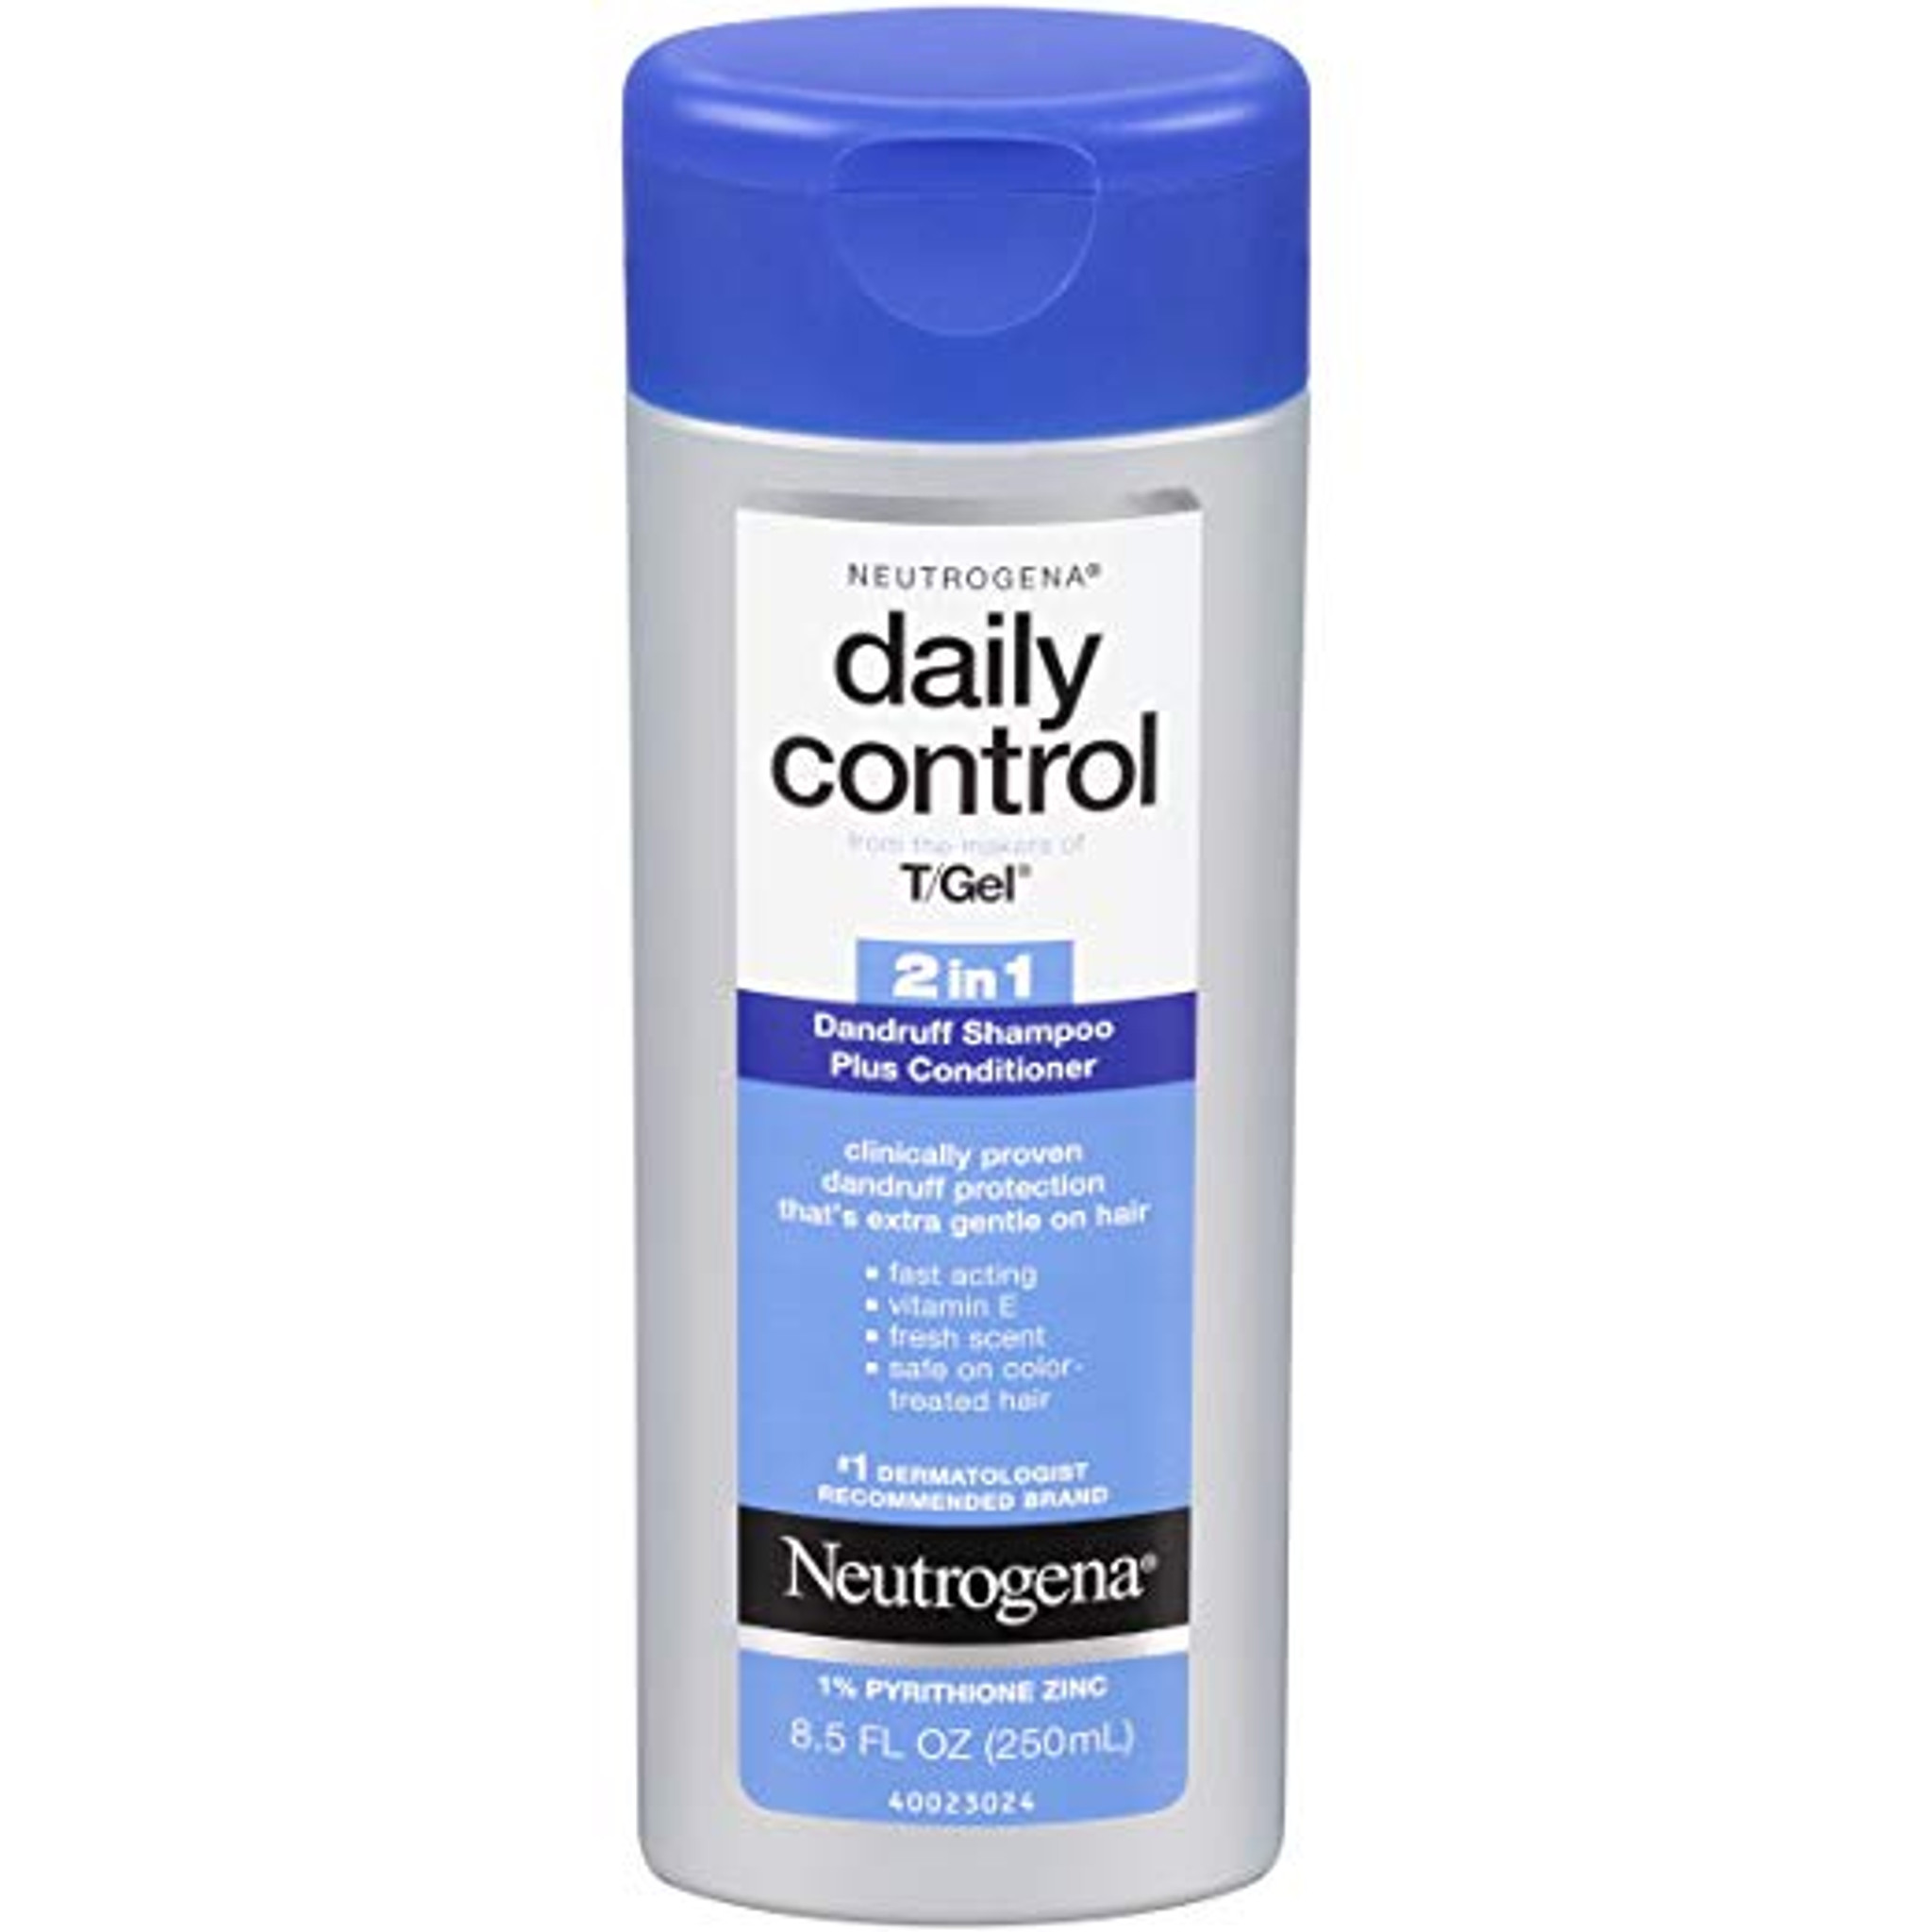 Neutrogena T Gel Daily Control 2 In 1 Anti Dandruff Shampoo Plus Conditioner With Vitamin E And Pyrithione Zinc Fast Acting Relief For Scalp Itching And Flaking 8 5 Fl Oz